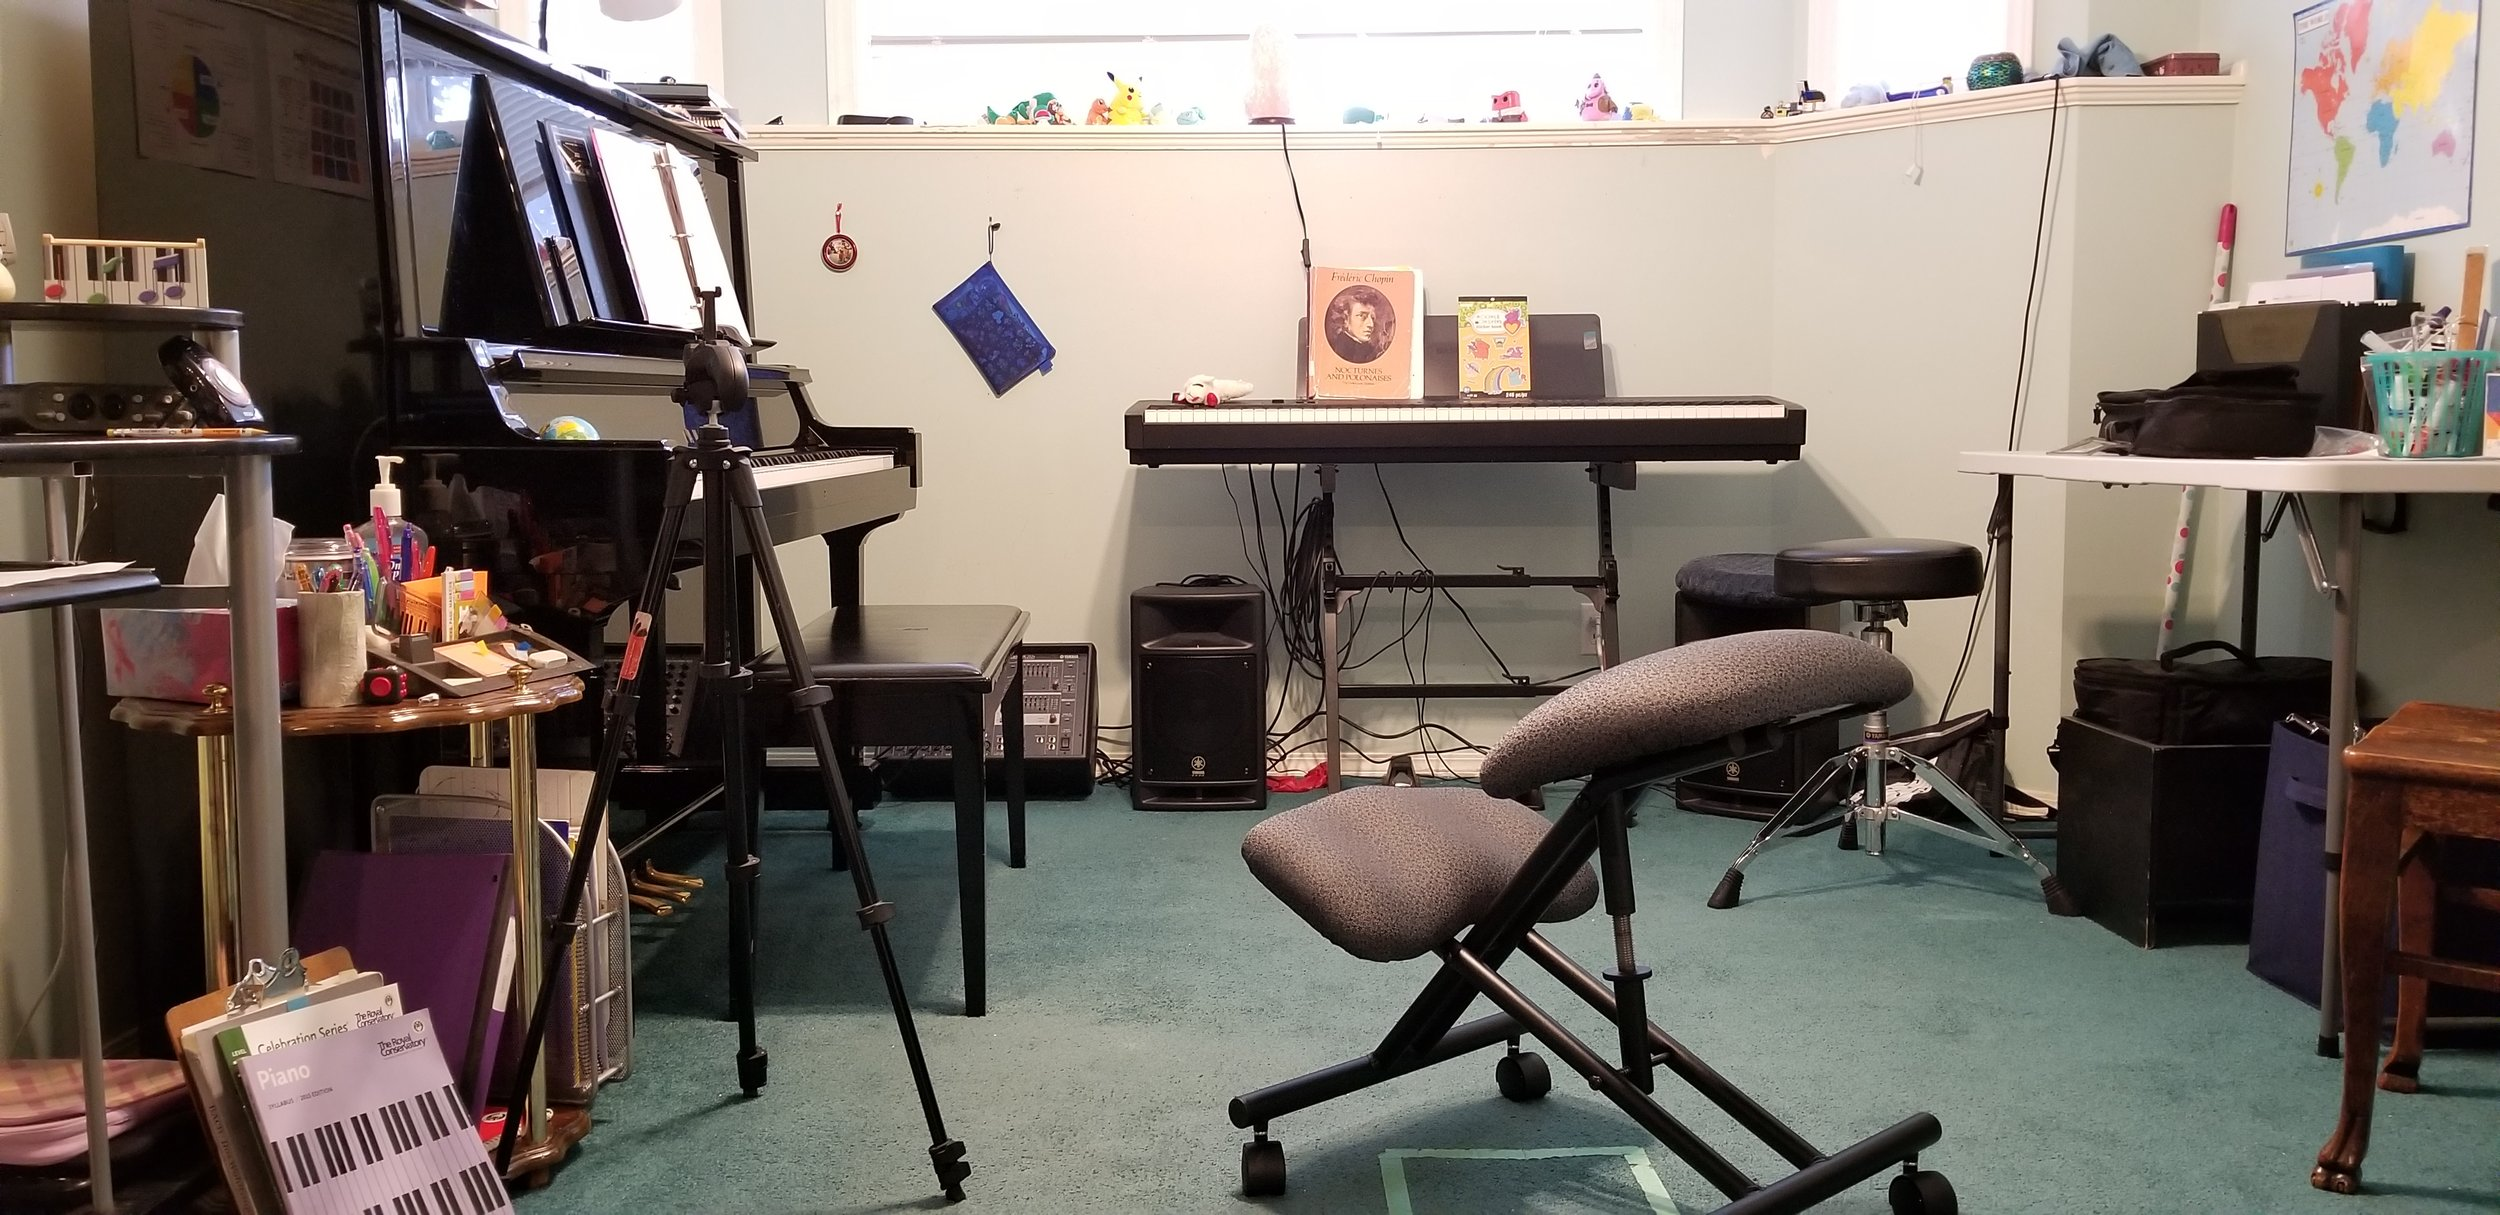 It was extremely easy to reconfigure my piano studio in such as way that I could take it easy on my back. Credit: R-M Arca.